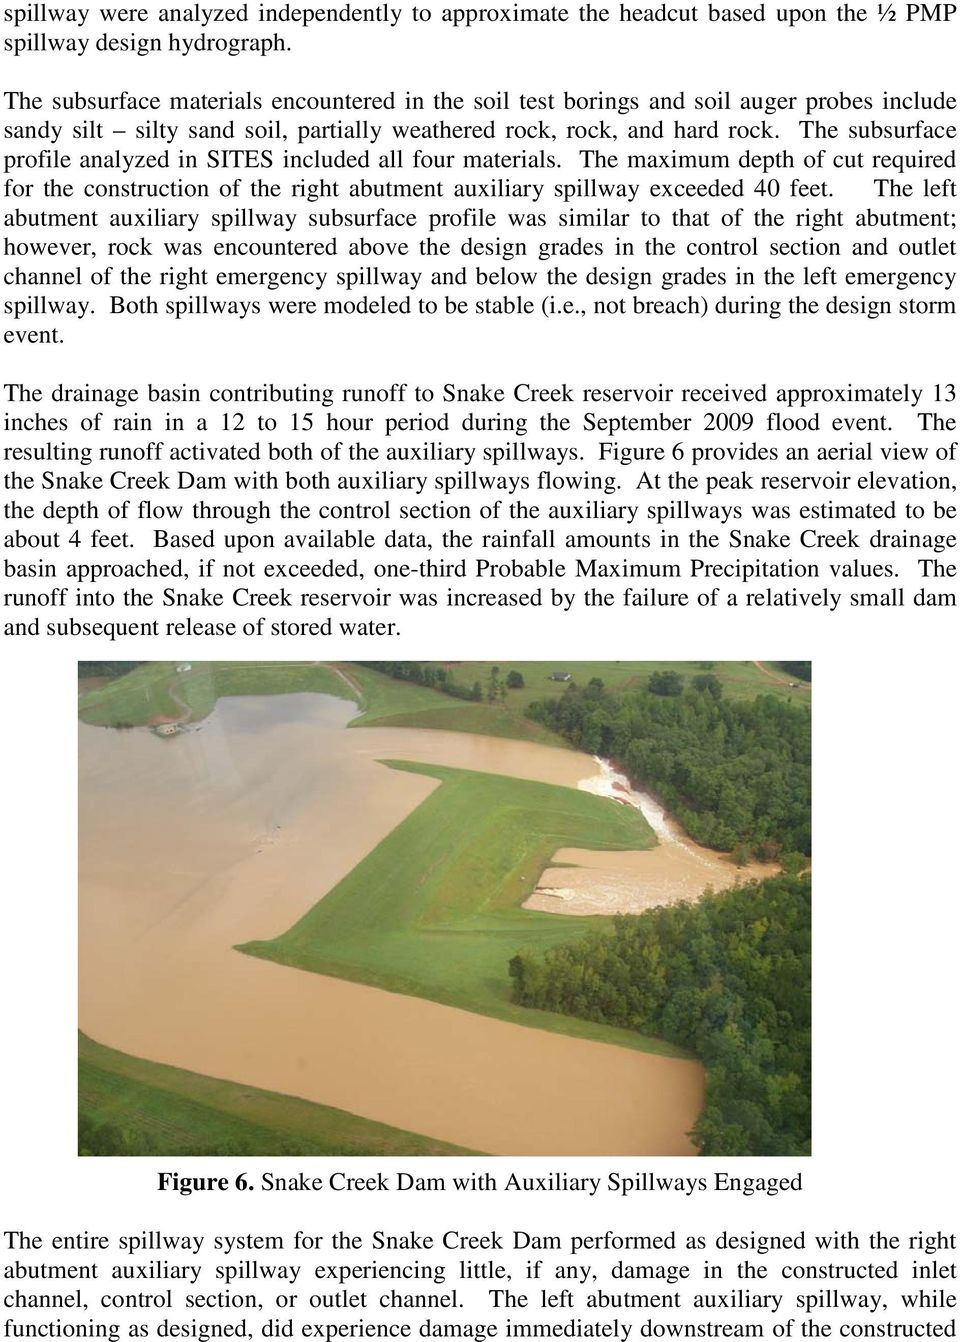 The subsurface profile analyzed in SITES included all four materials. The maximum depth of cut required for the construction of the right abutment auxiliary spillway exceeded 40 feet.